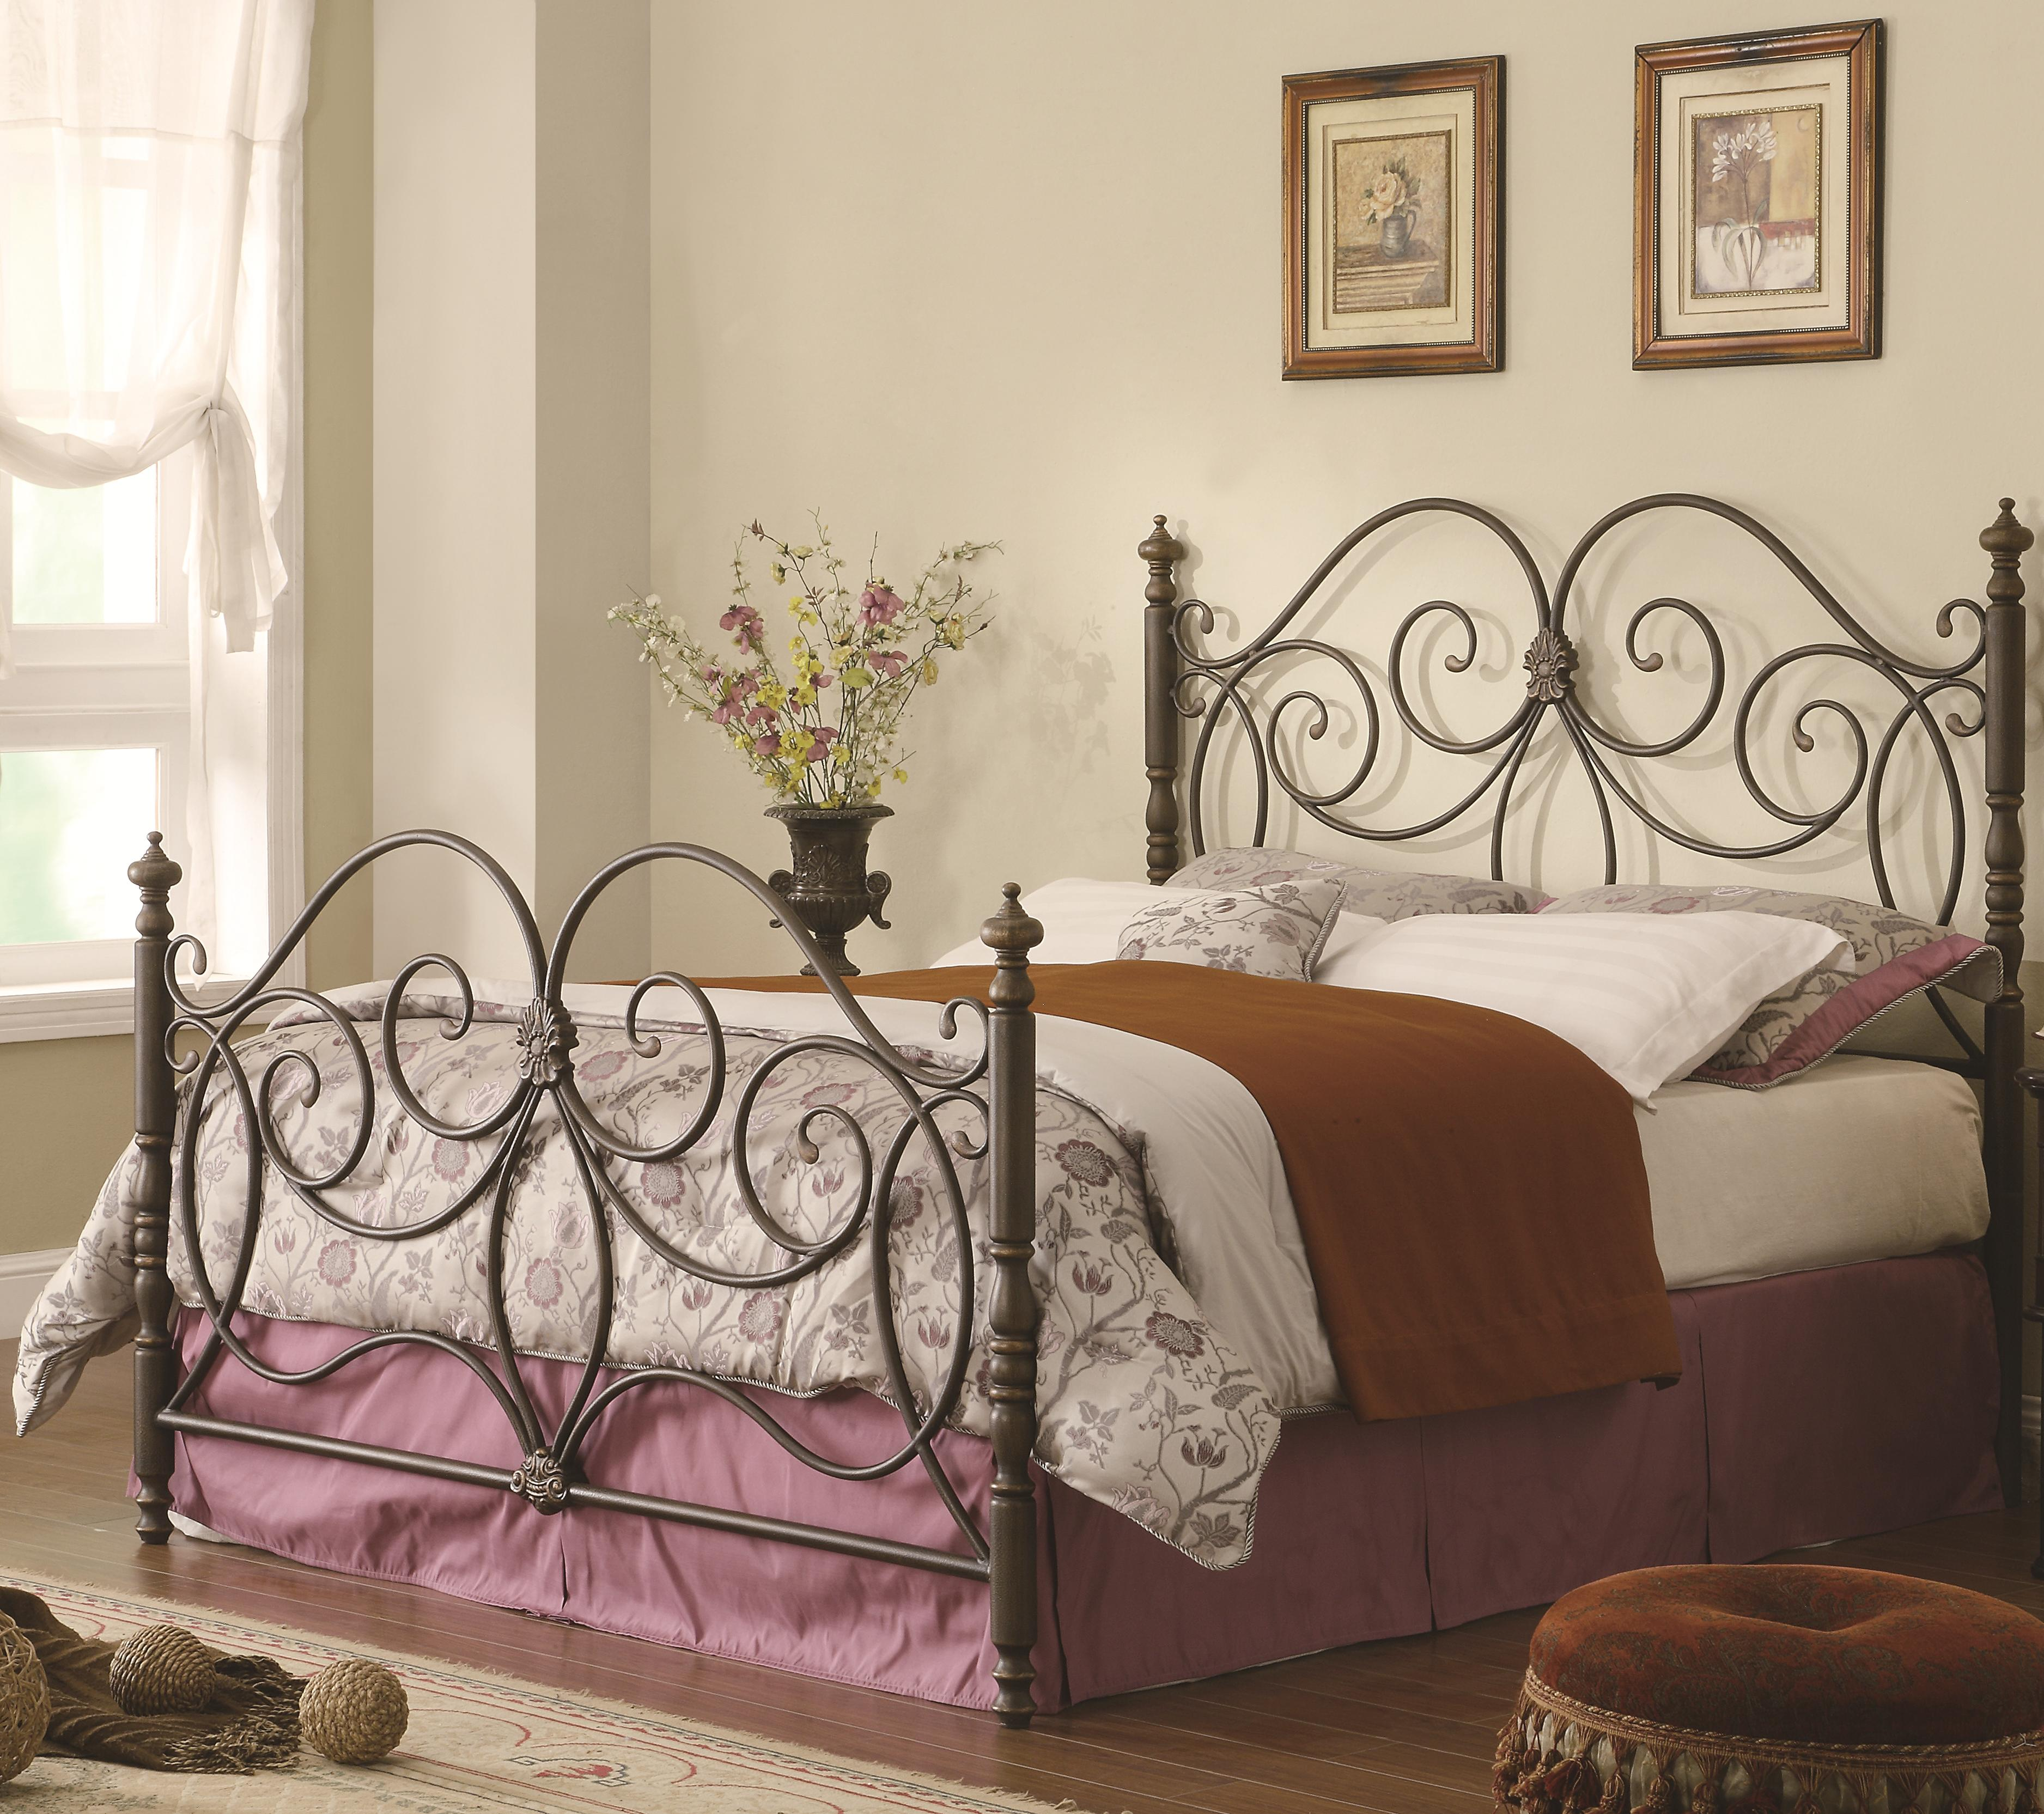 Metal Bed Headboards Iron Beds And Headboards Queen Iron Bed With Scroll Details By Coaster At A1 Furniture Mattress